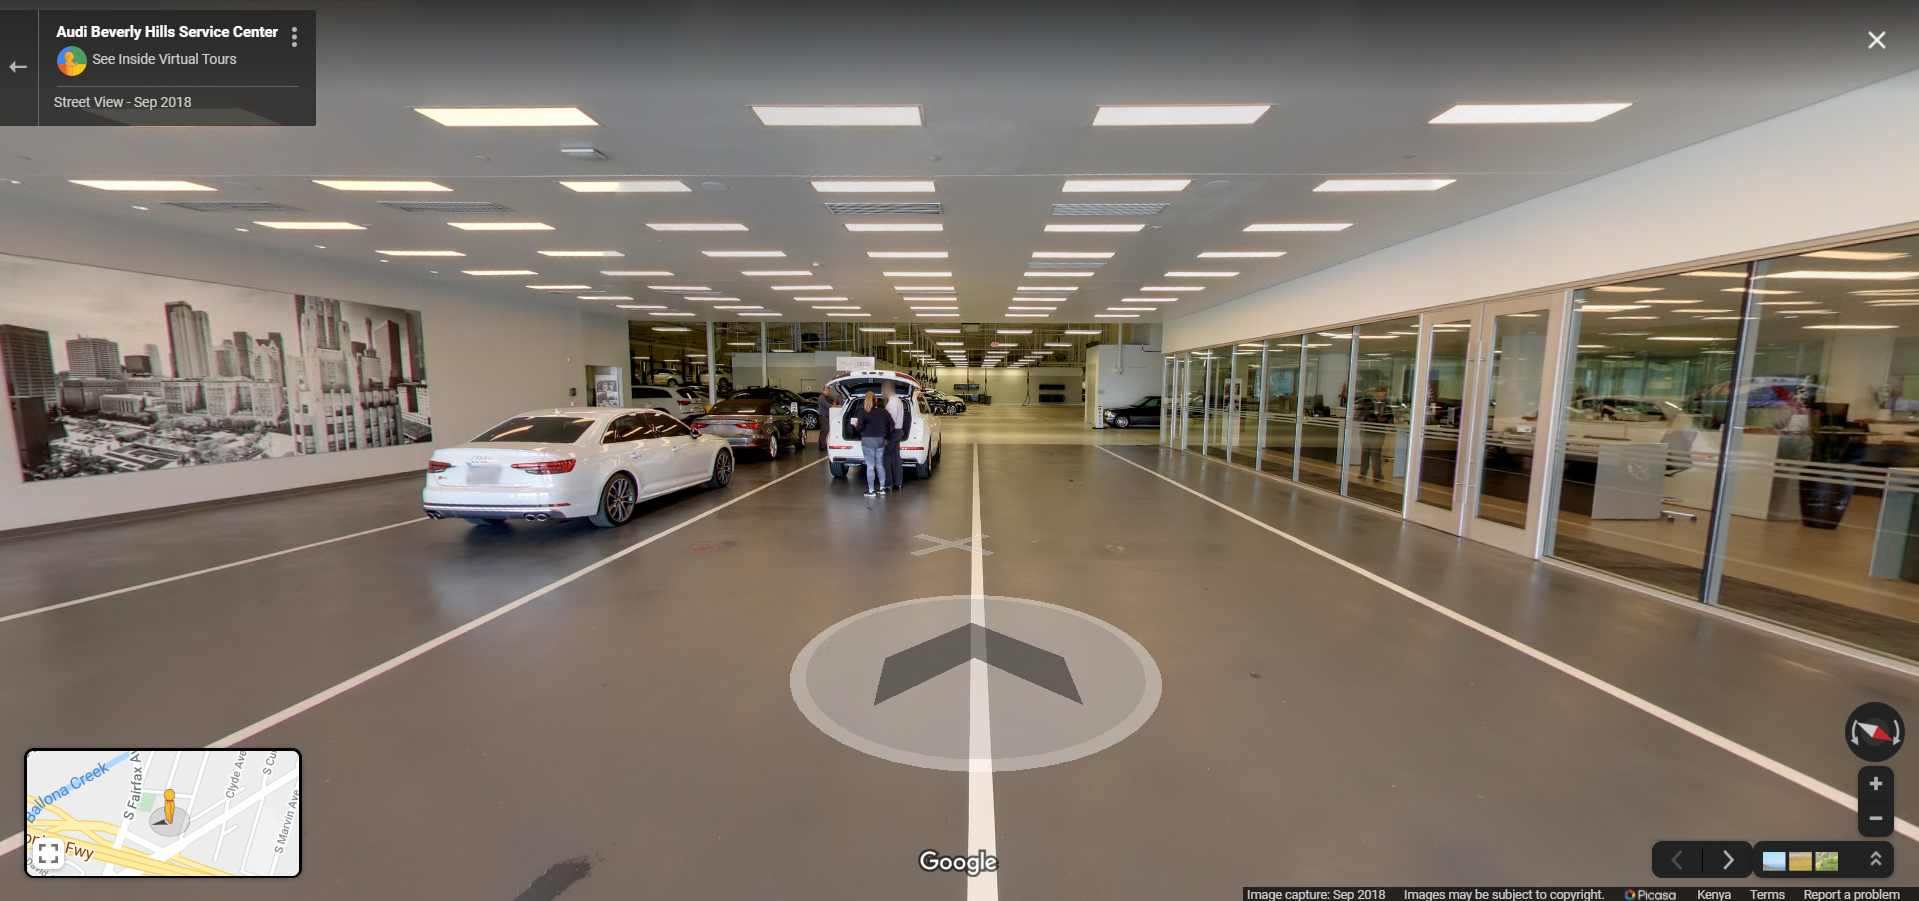 Audi Beverly Hills Service - Los Angeles